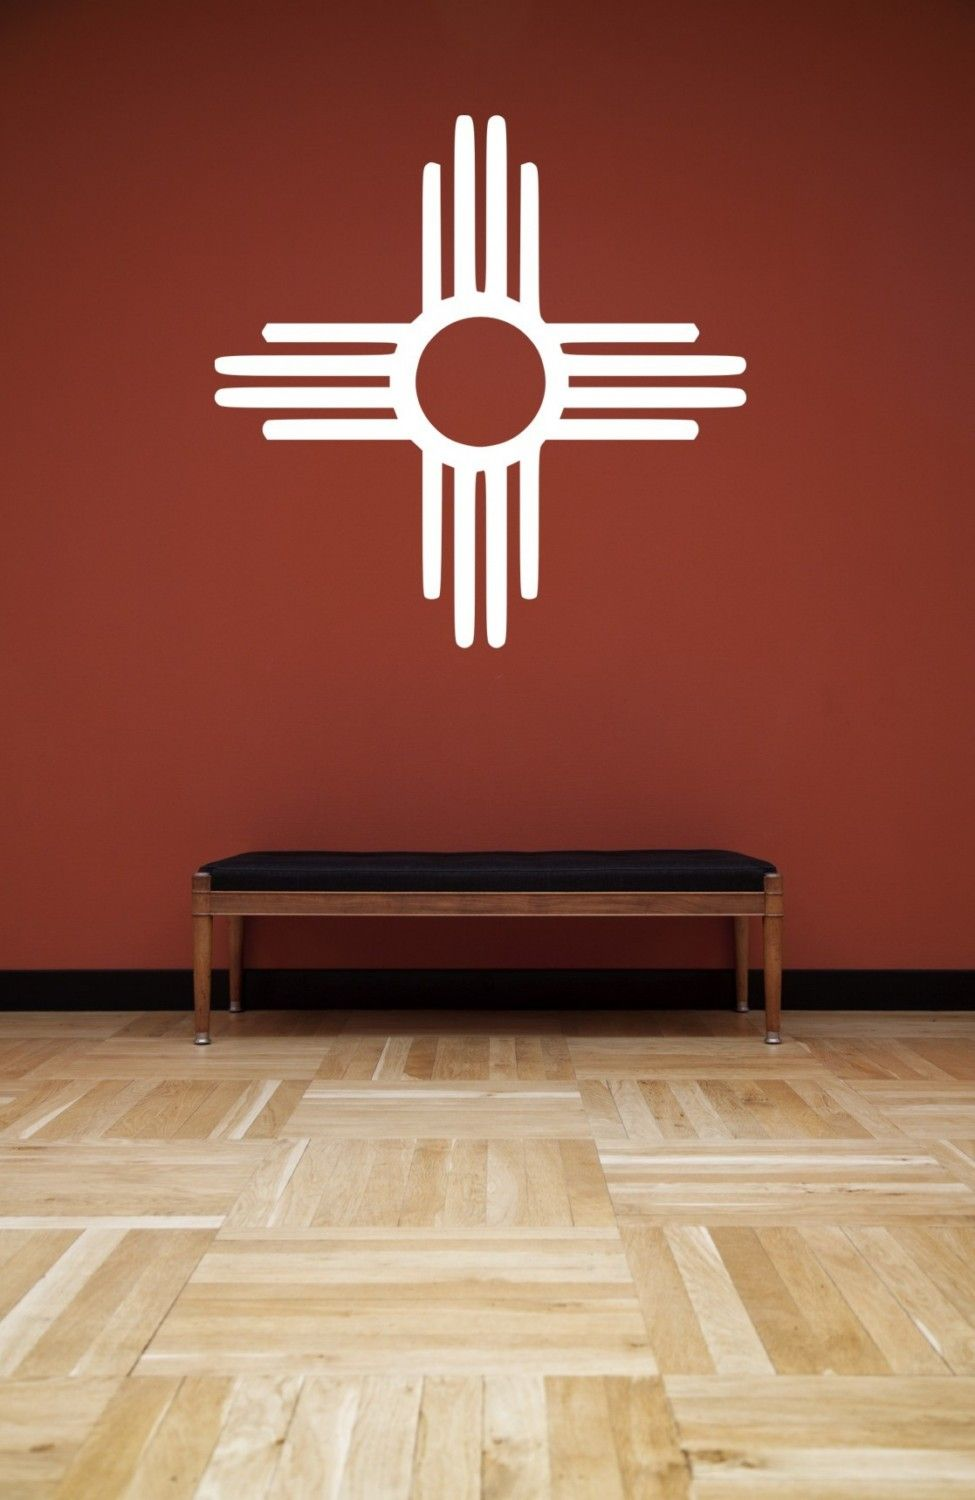 Pin By Hdi 19 On Southwest House With Images: New Mexico Zia Symbol Wall Decal. $34.99, Via Etsy.